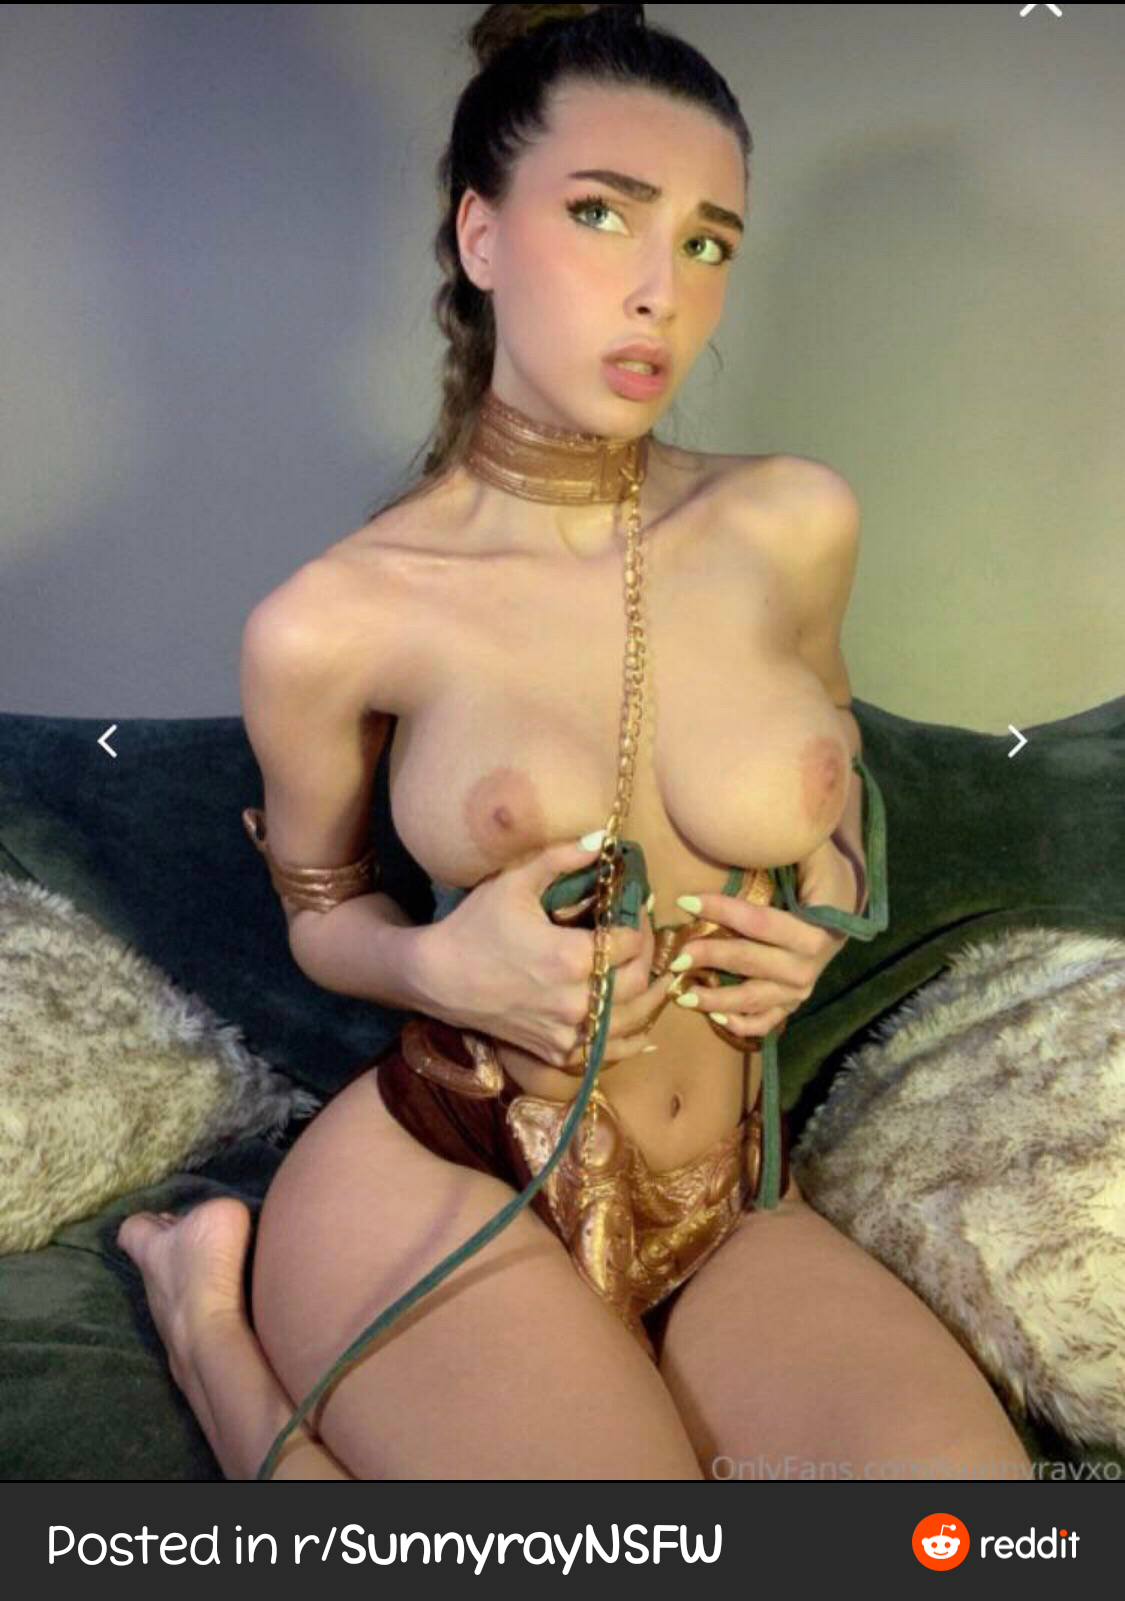 SunnyRayXO Cosplay Porn OnlyFans Videos Gallery Leaked